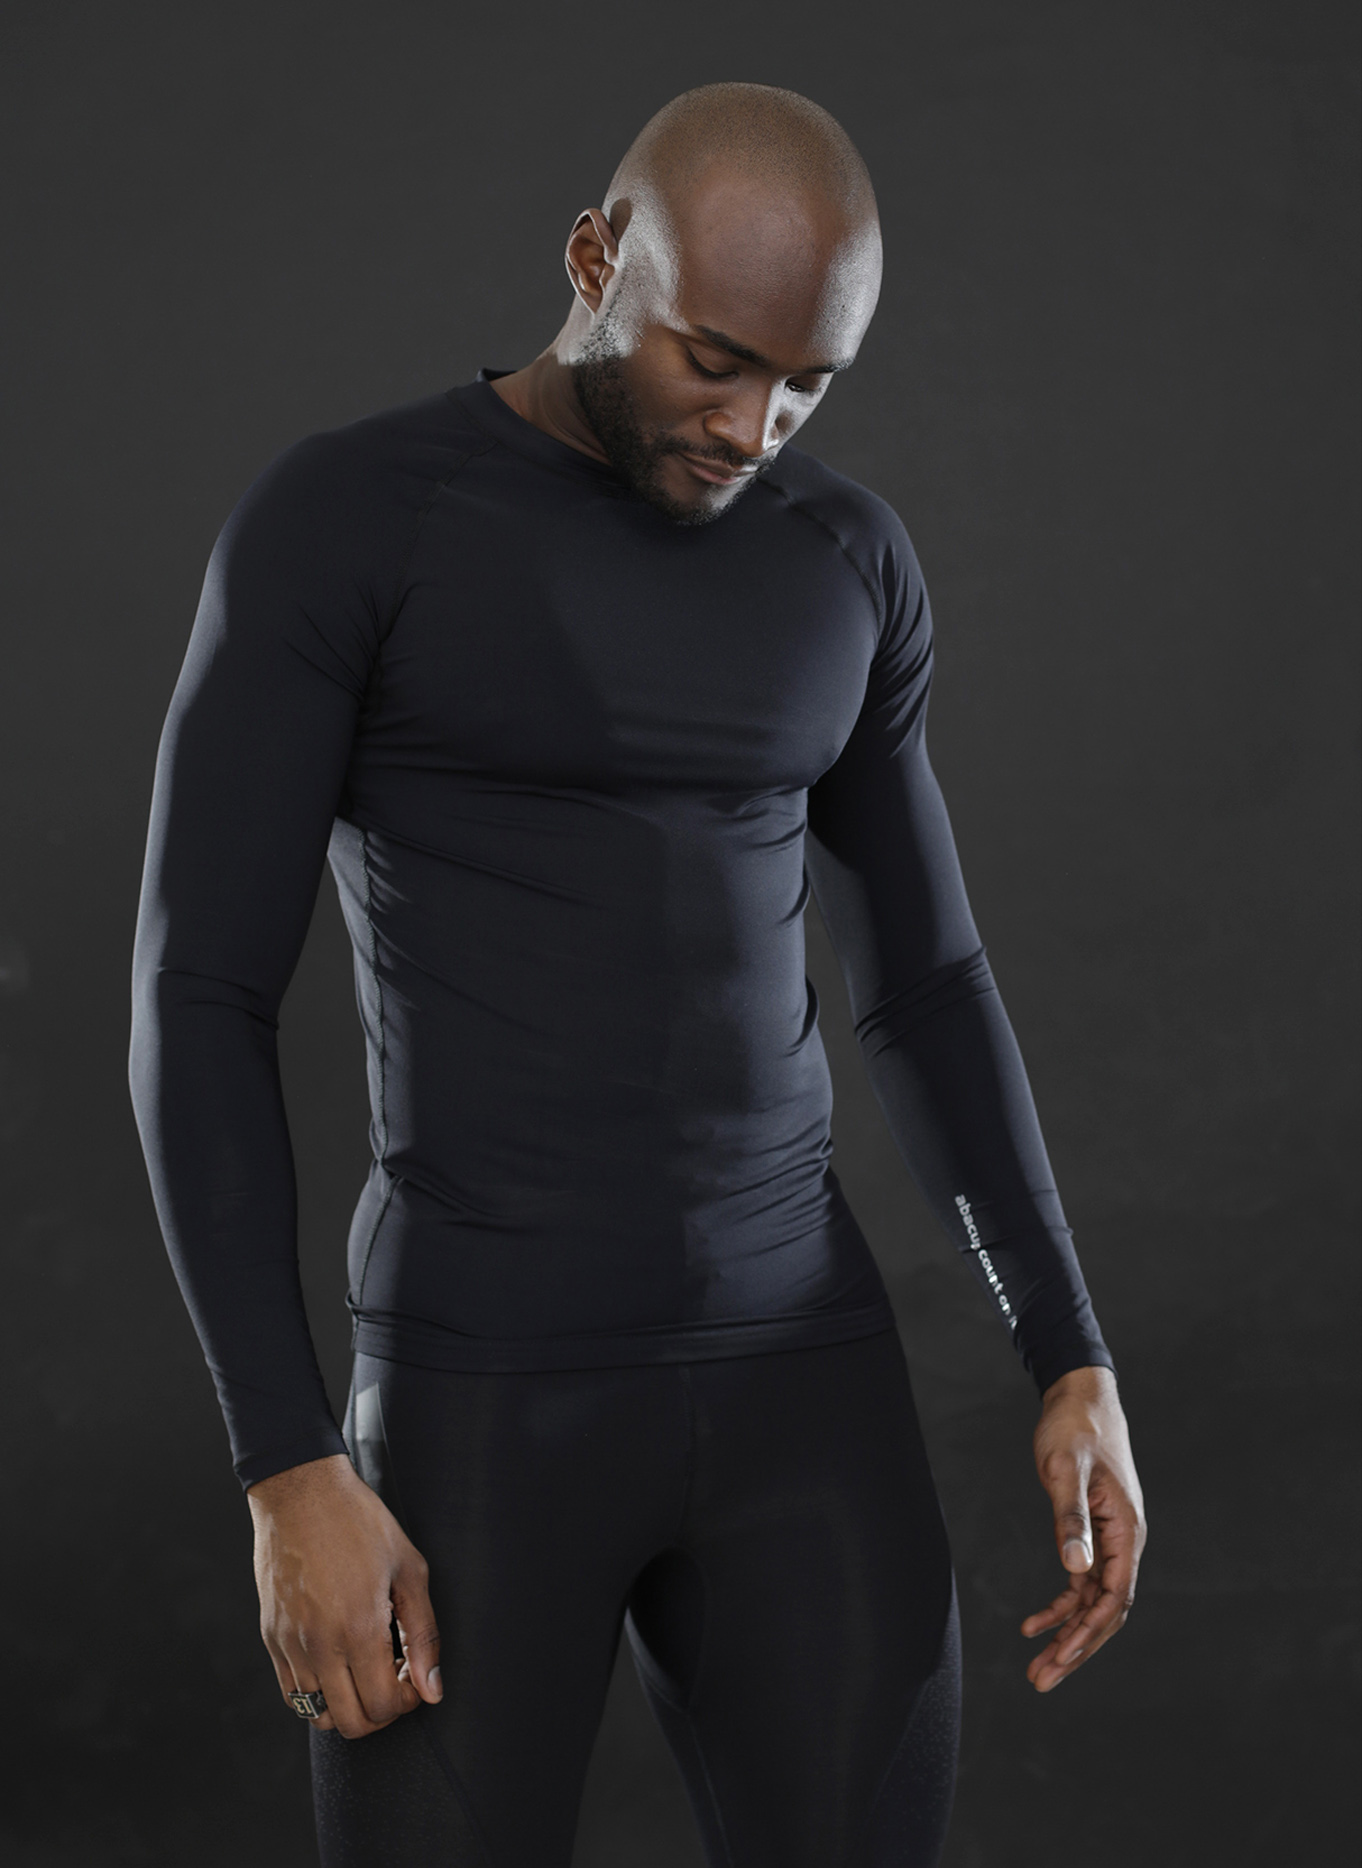 Boris René tight sportswear